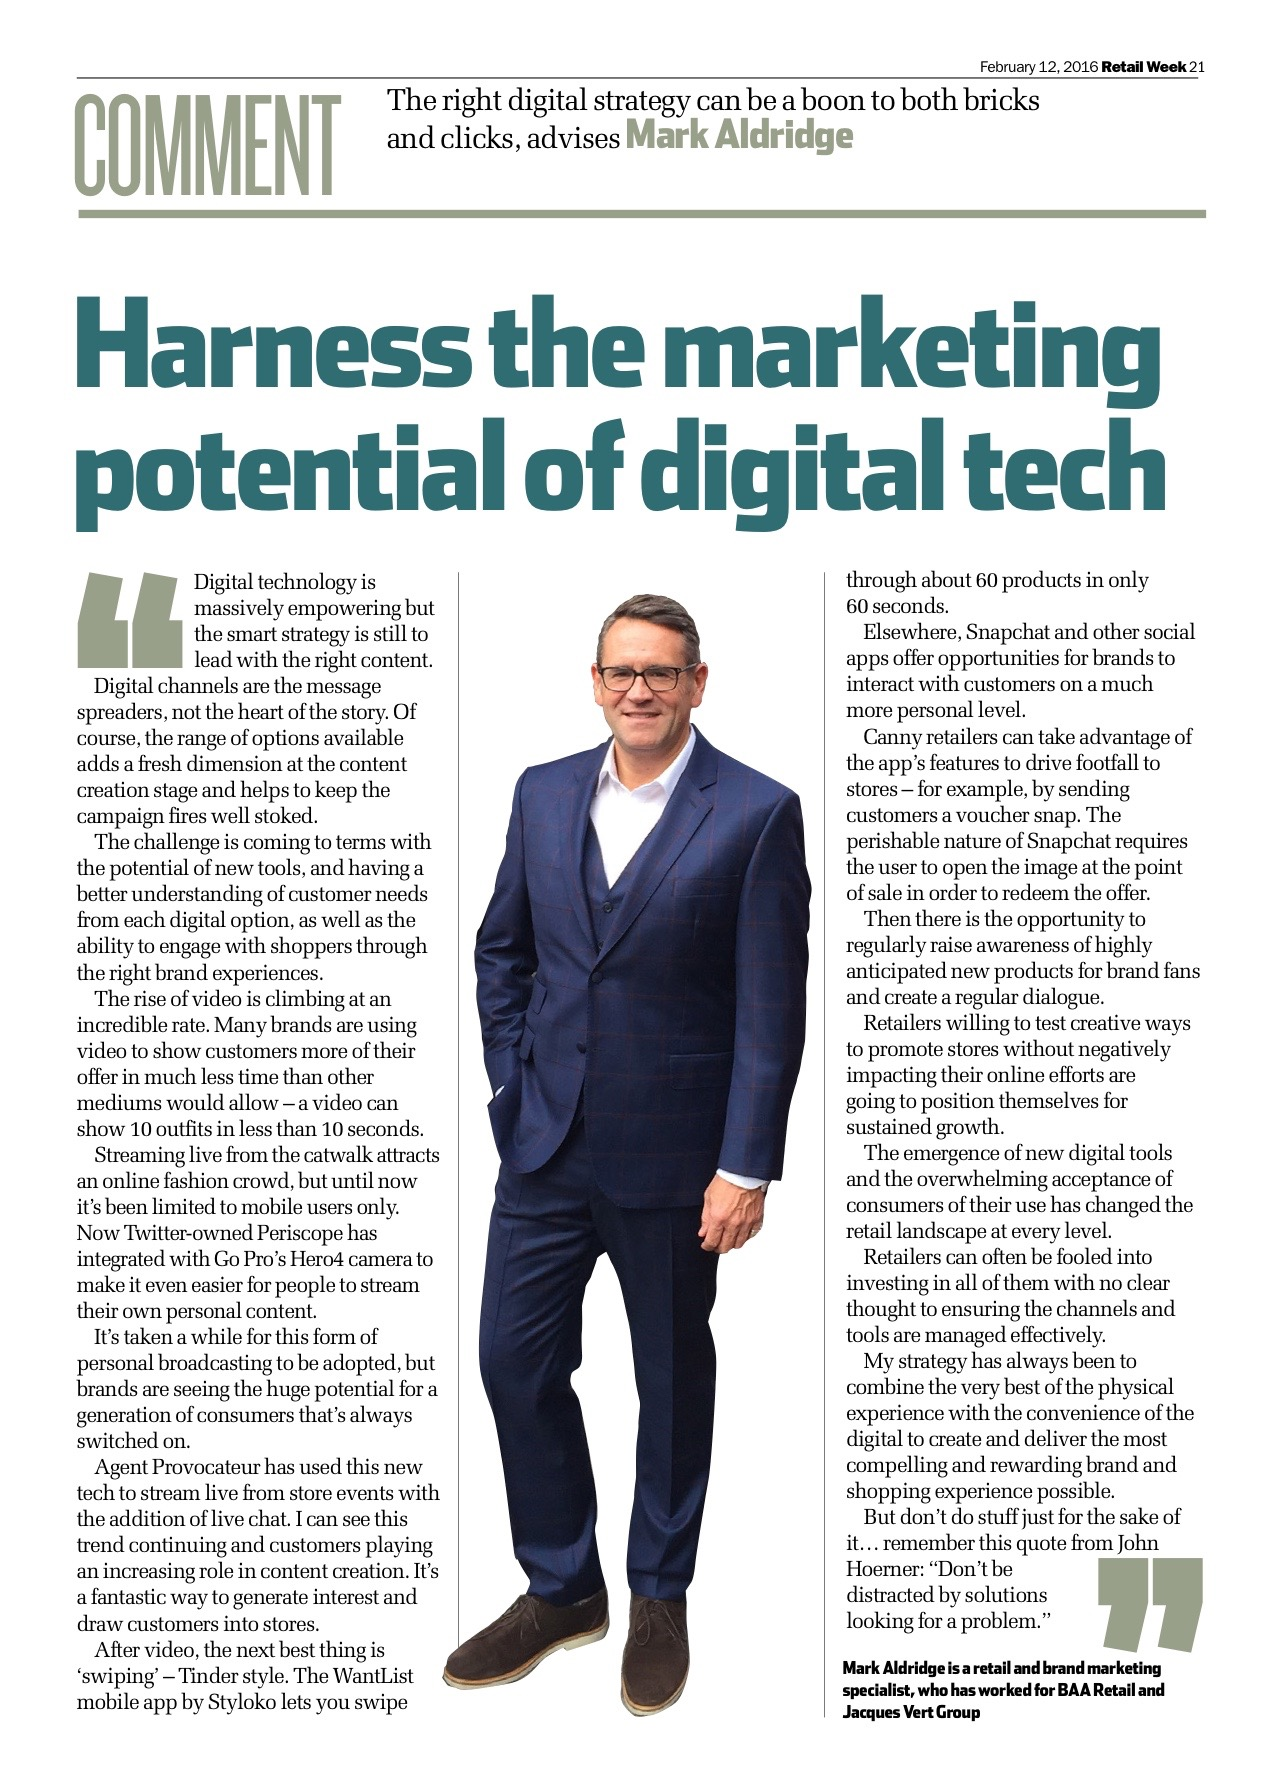 Harness the marketing potential of digital tech – Retail Week February 2016